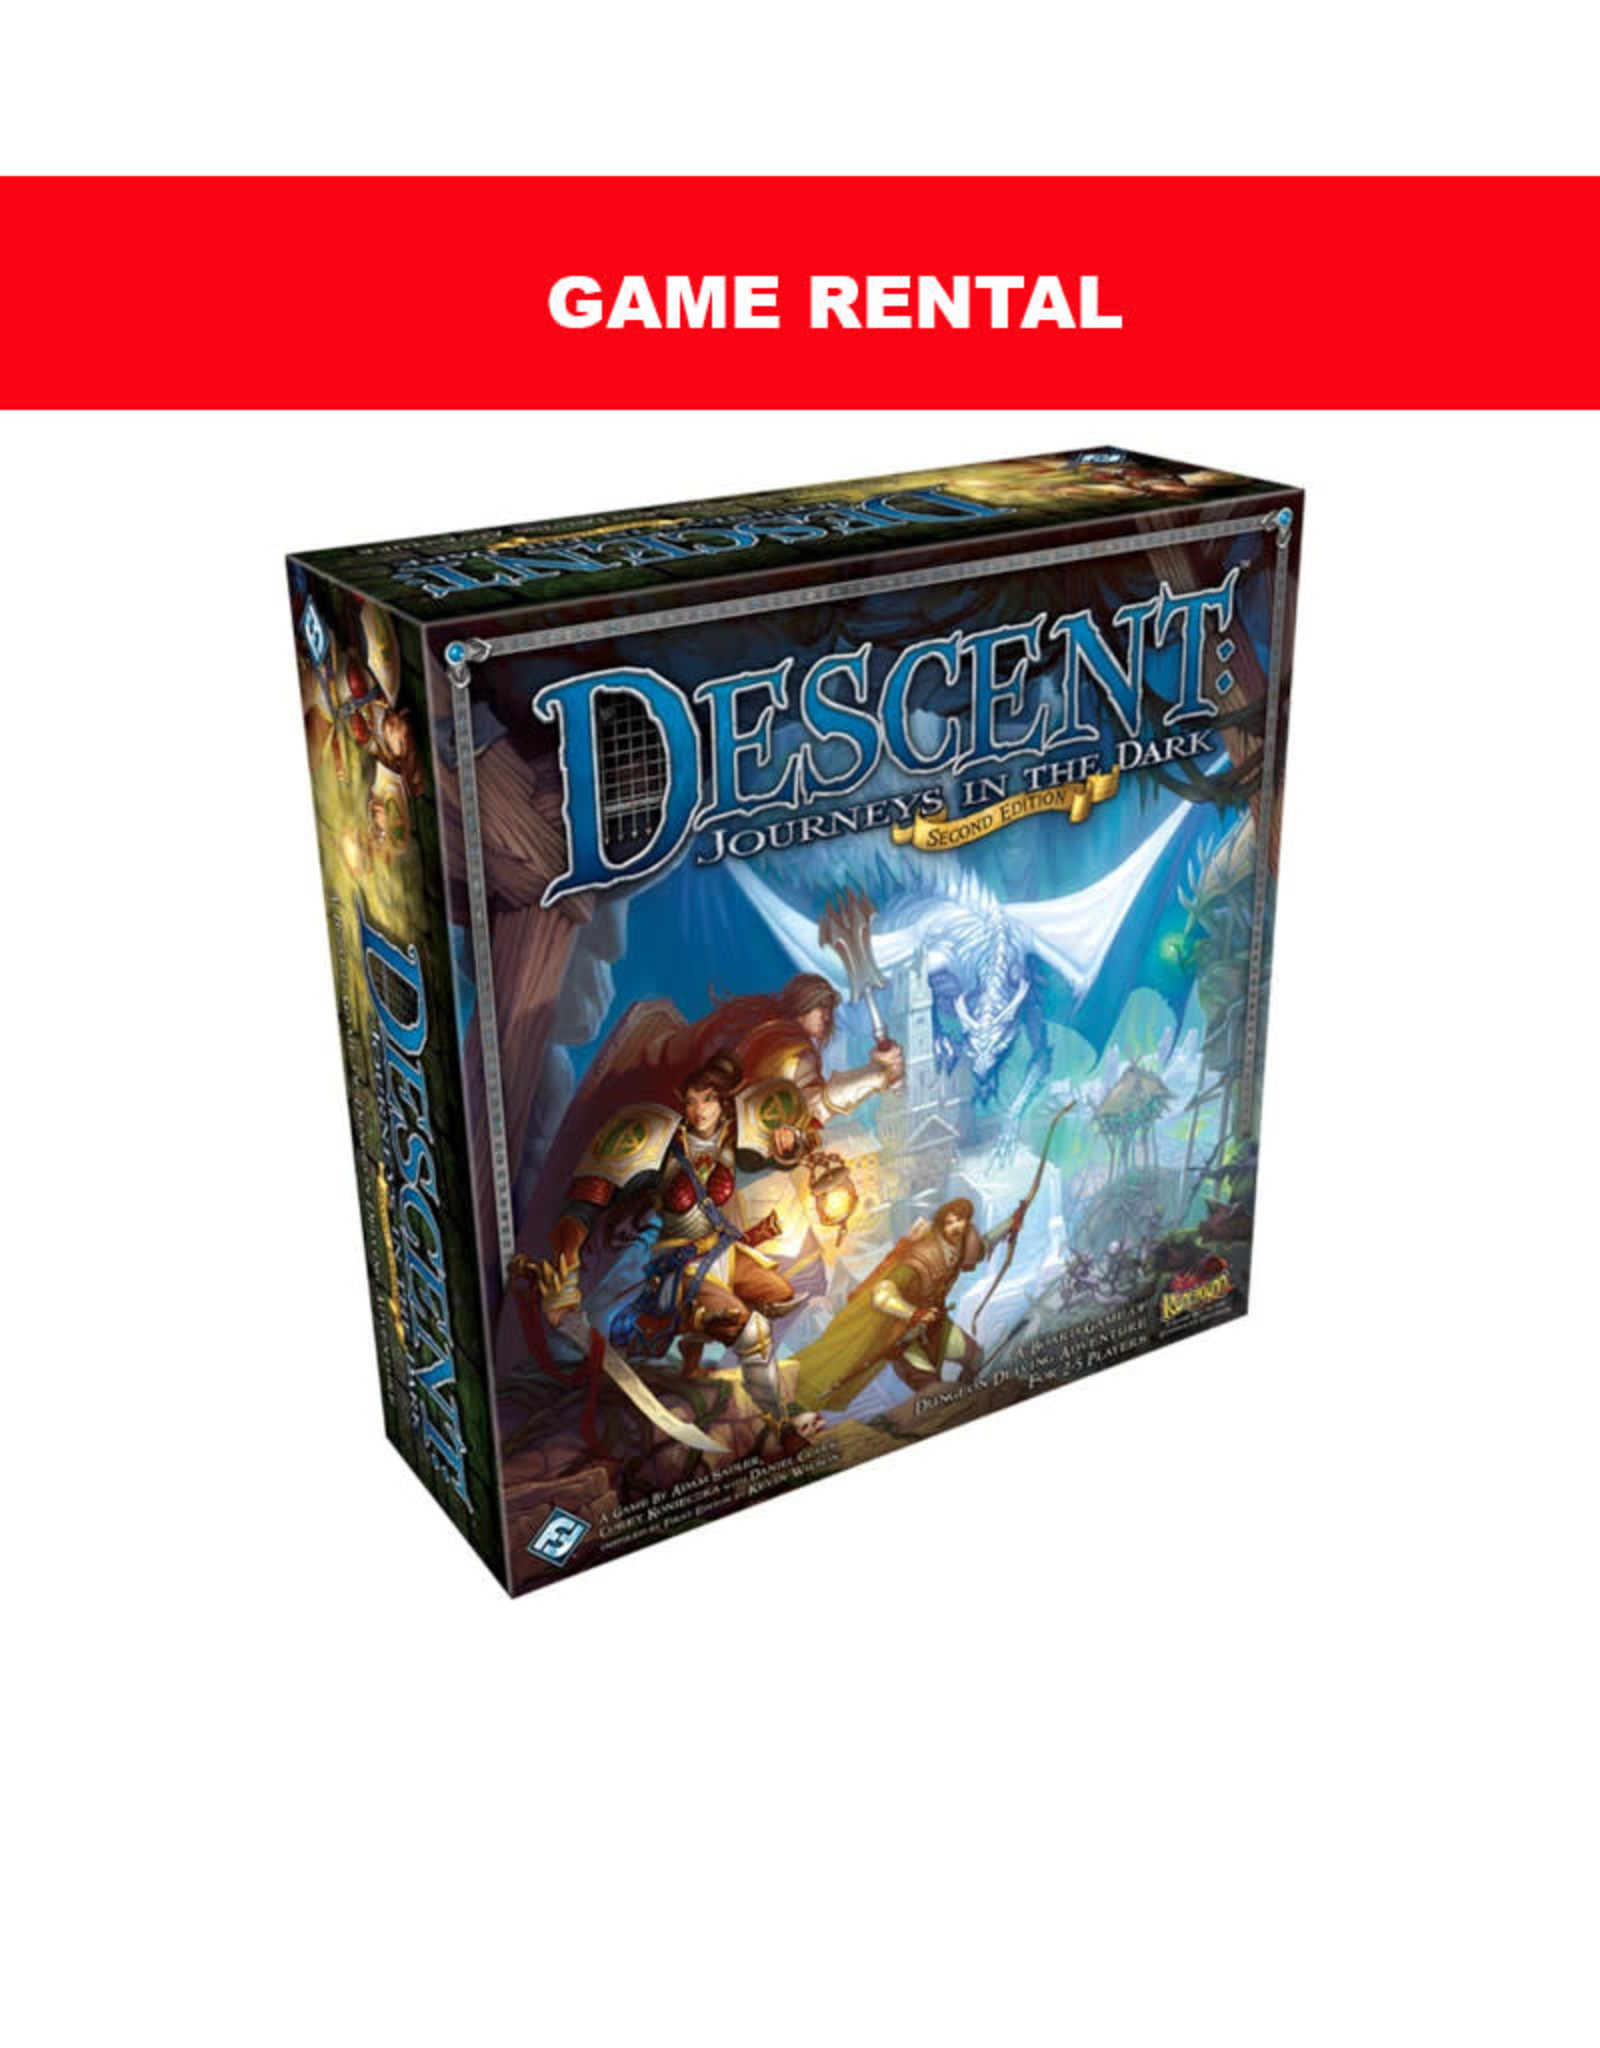 Game Night Games (RENT) Descent: Journeys in the Dark For a Day. Love It! Buy It!